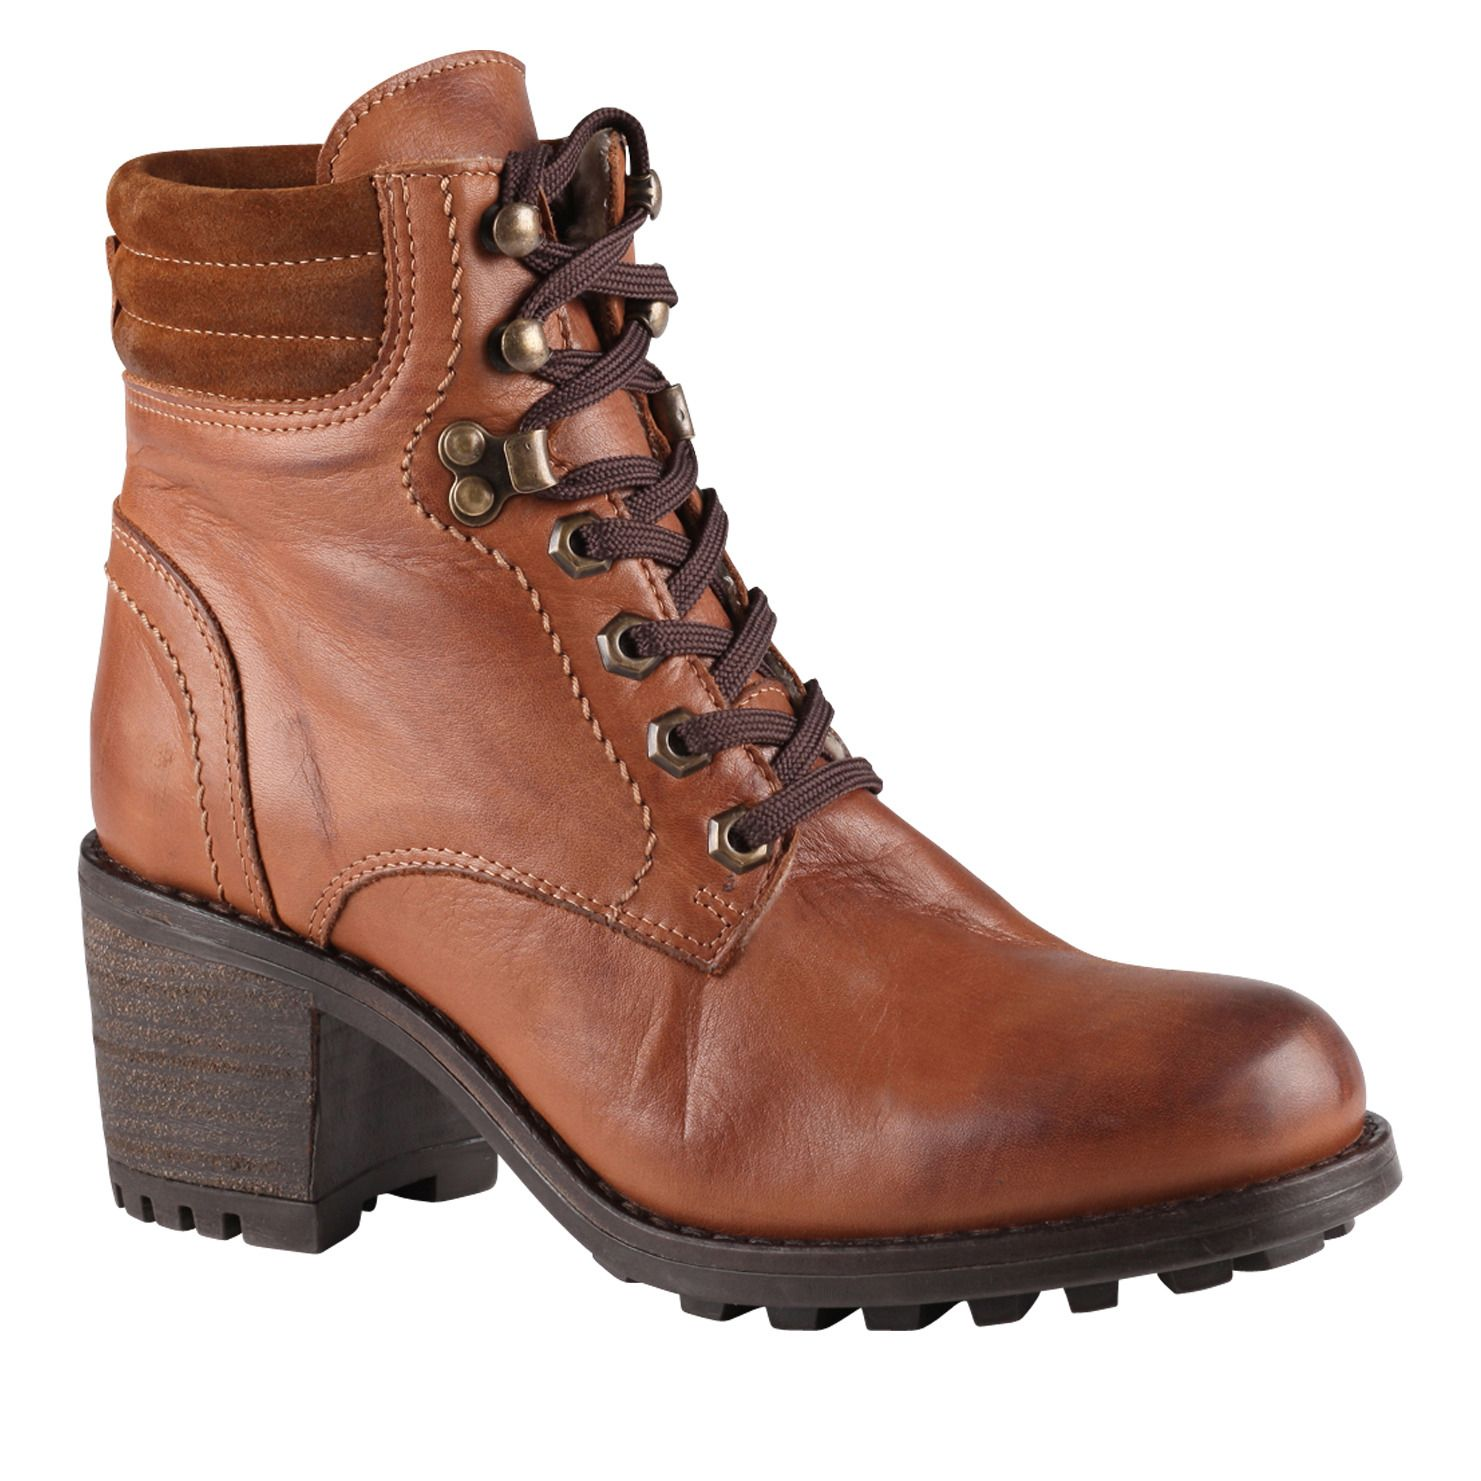 af48e4b0bb8 Aldo Mech boots.. tried these on yesterday and i'm head over HEELS ...